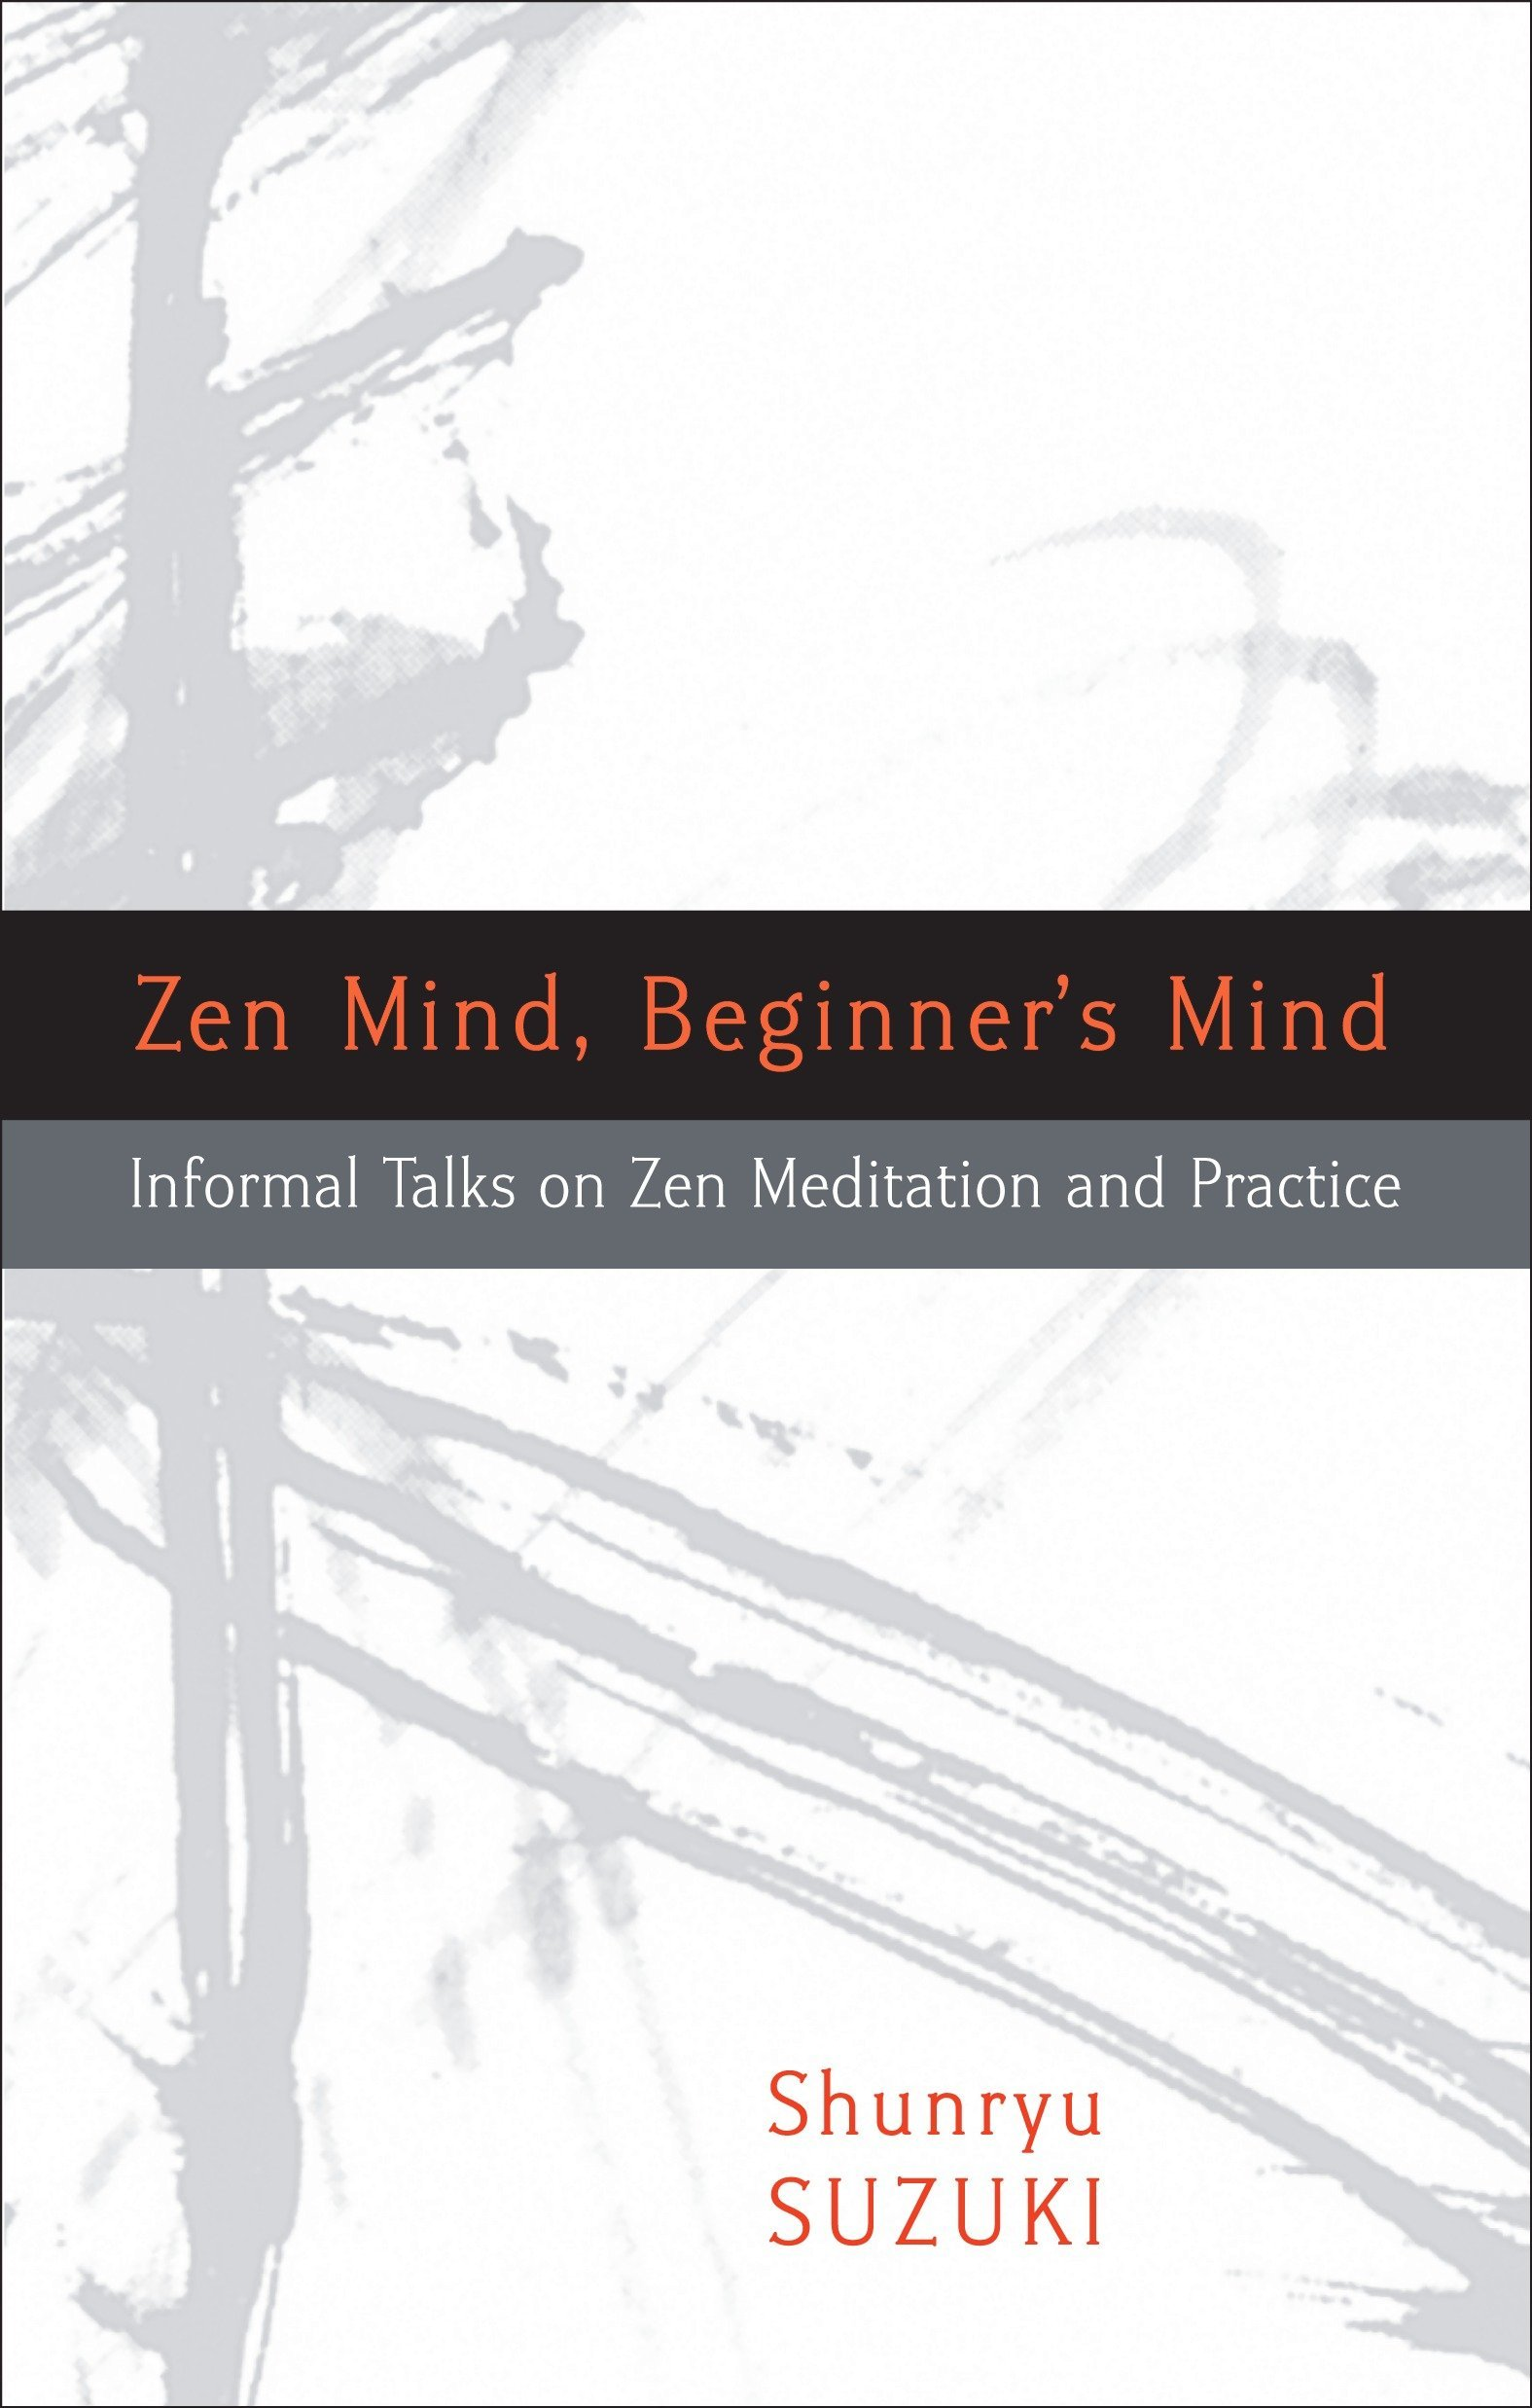 Zen Mind, Beginner's Mind- Informal Talks On Zen Meditation & Practice